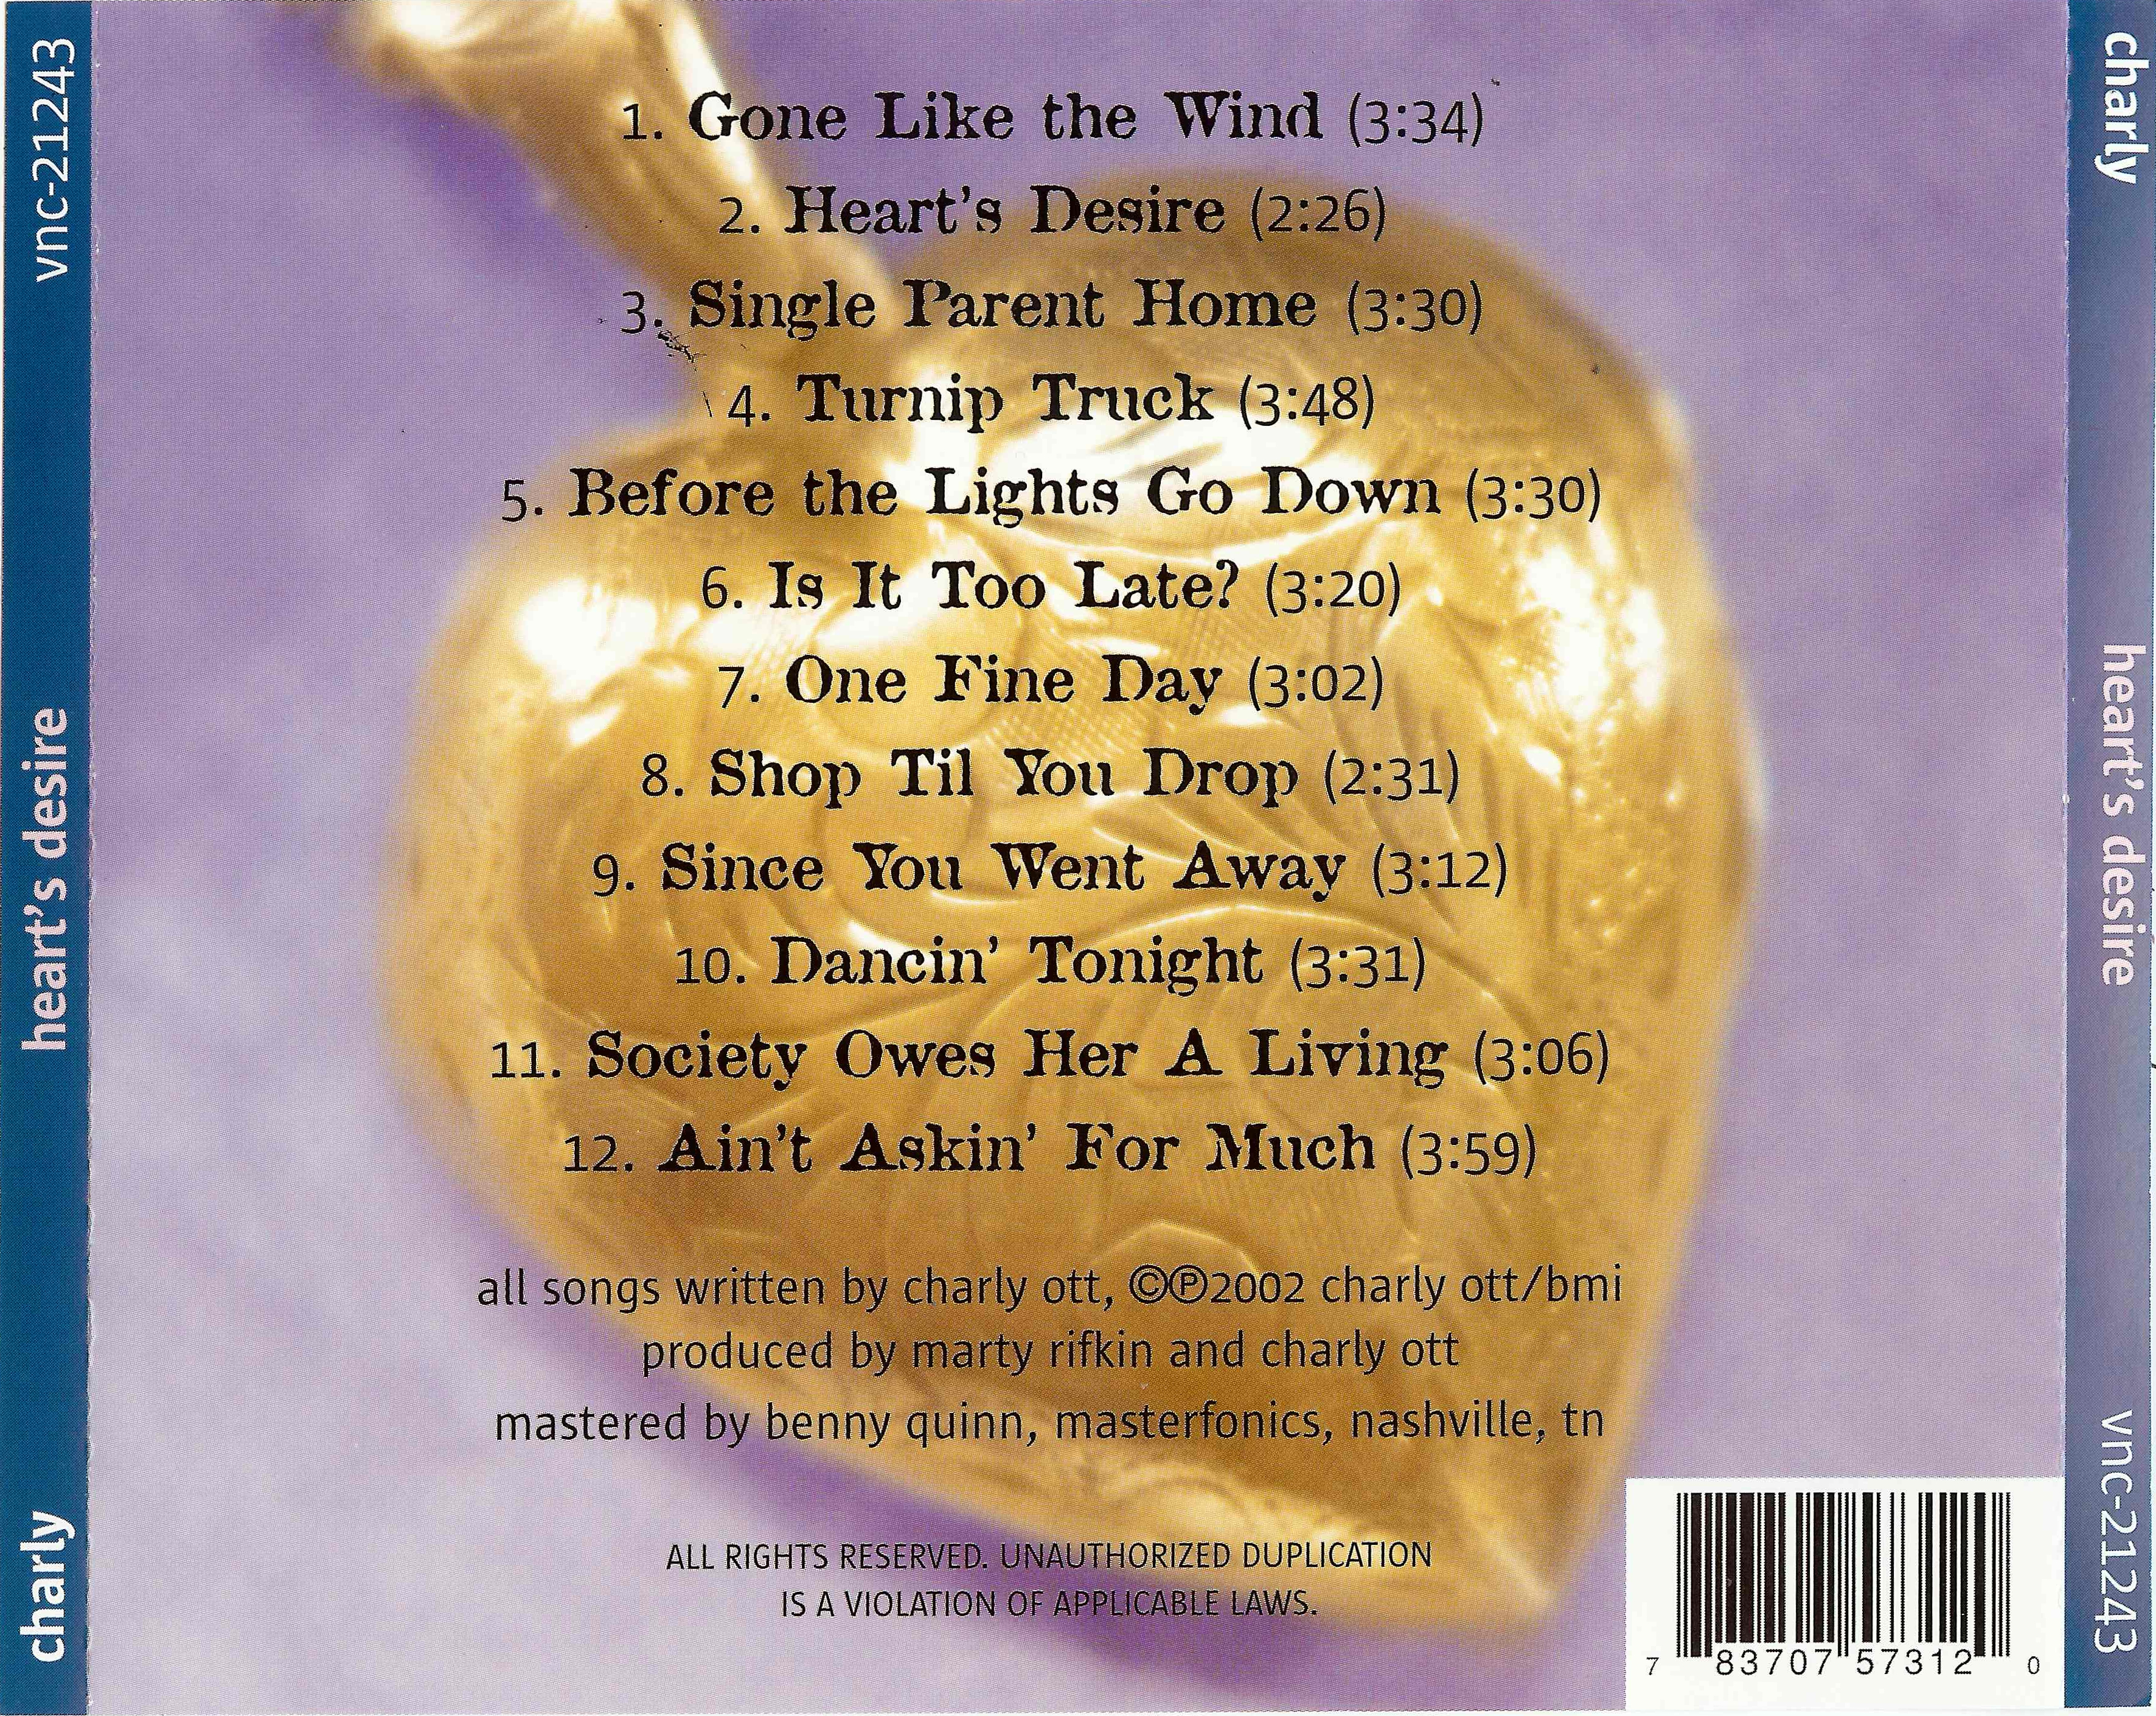 Back of Liner Song Listng